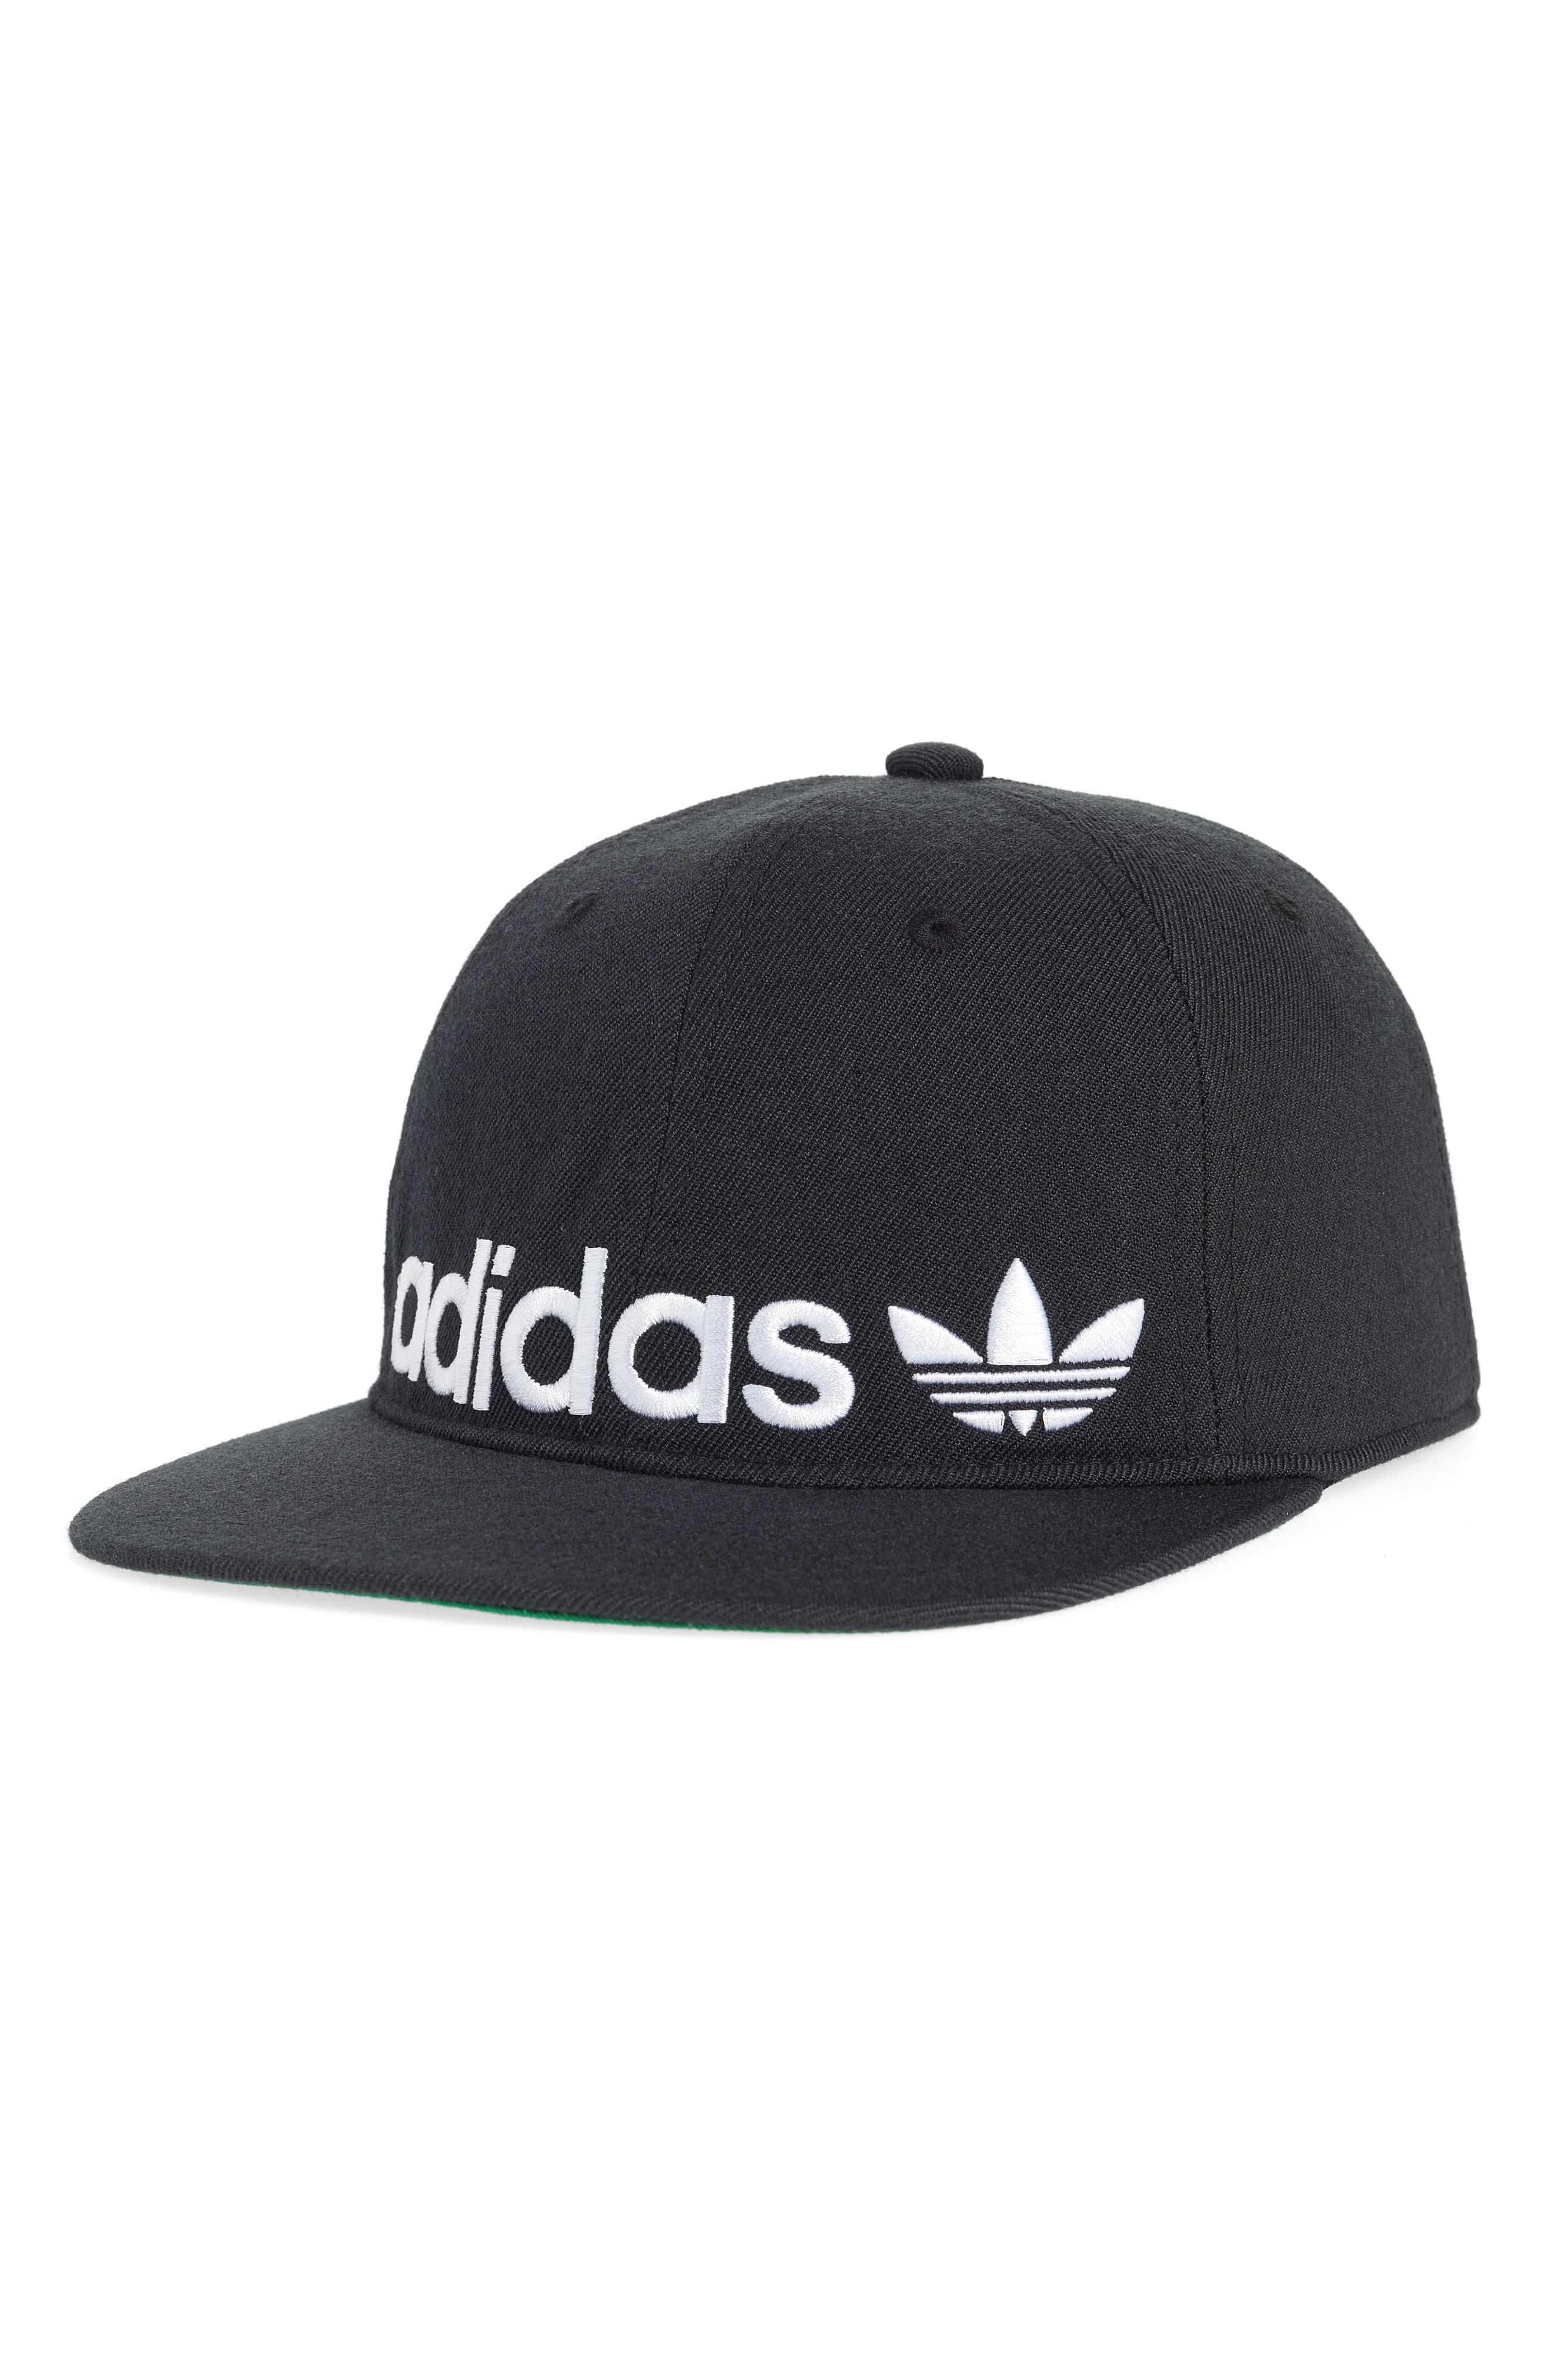 1aa8e8b7 Lyst - adidas Originals Relaxed Banner Embroidered Cap - for Men